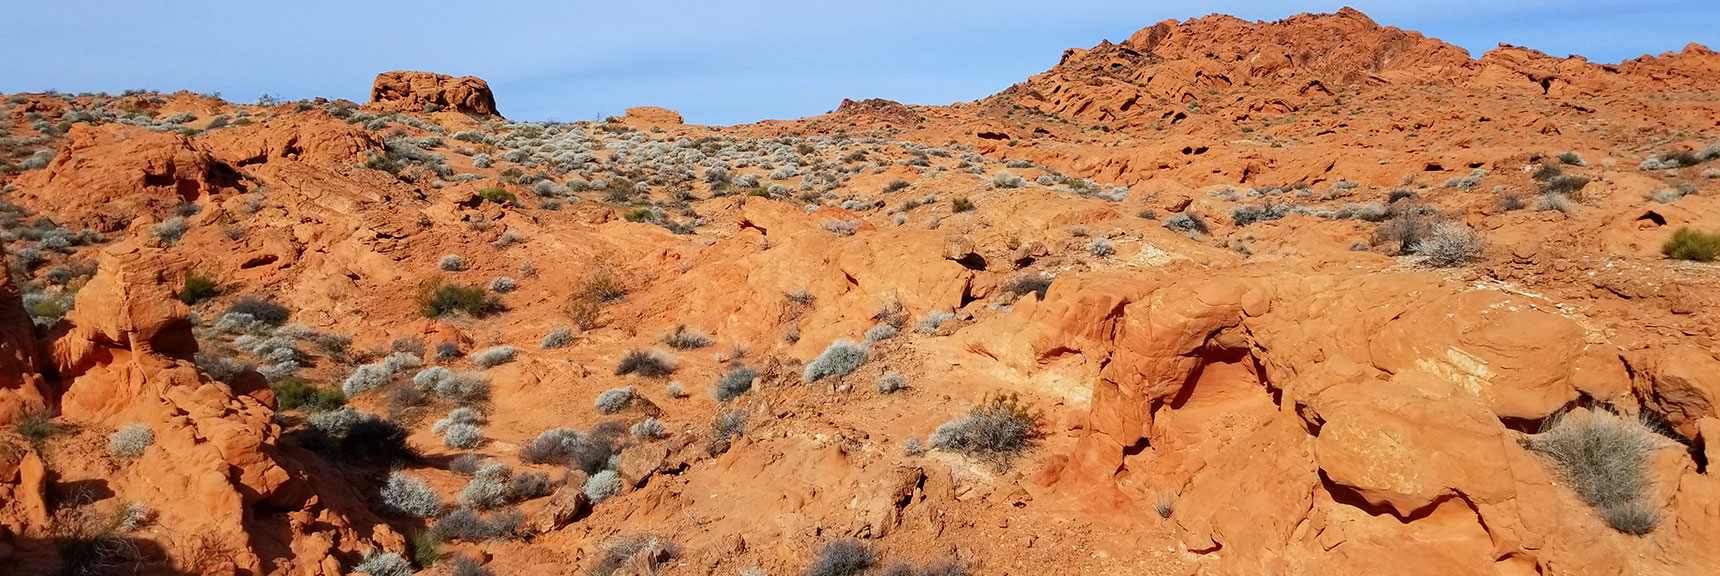 Navigating the Red Rock Hills South of Elephant Rock Loop in Valley of Fire State Park, Nevada